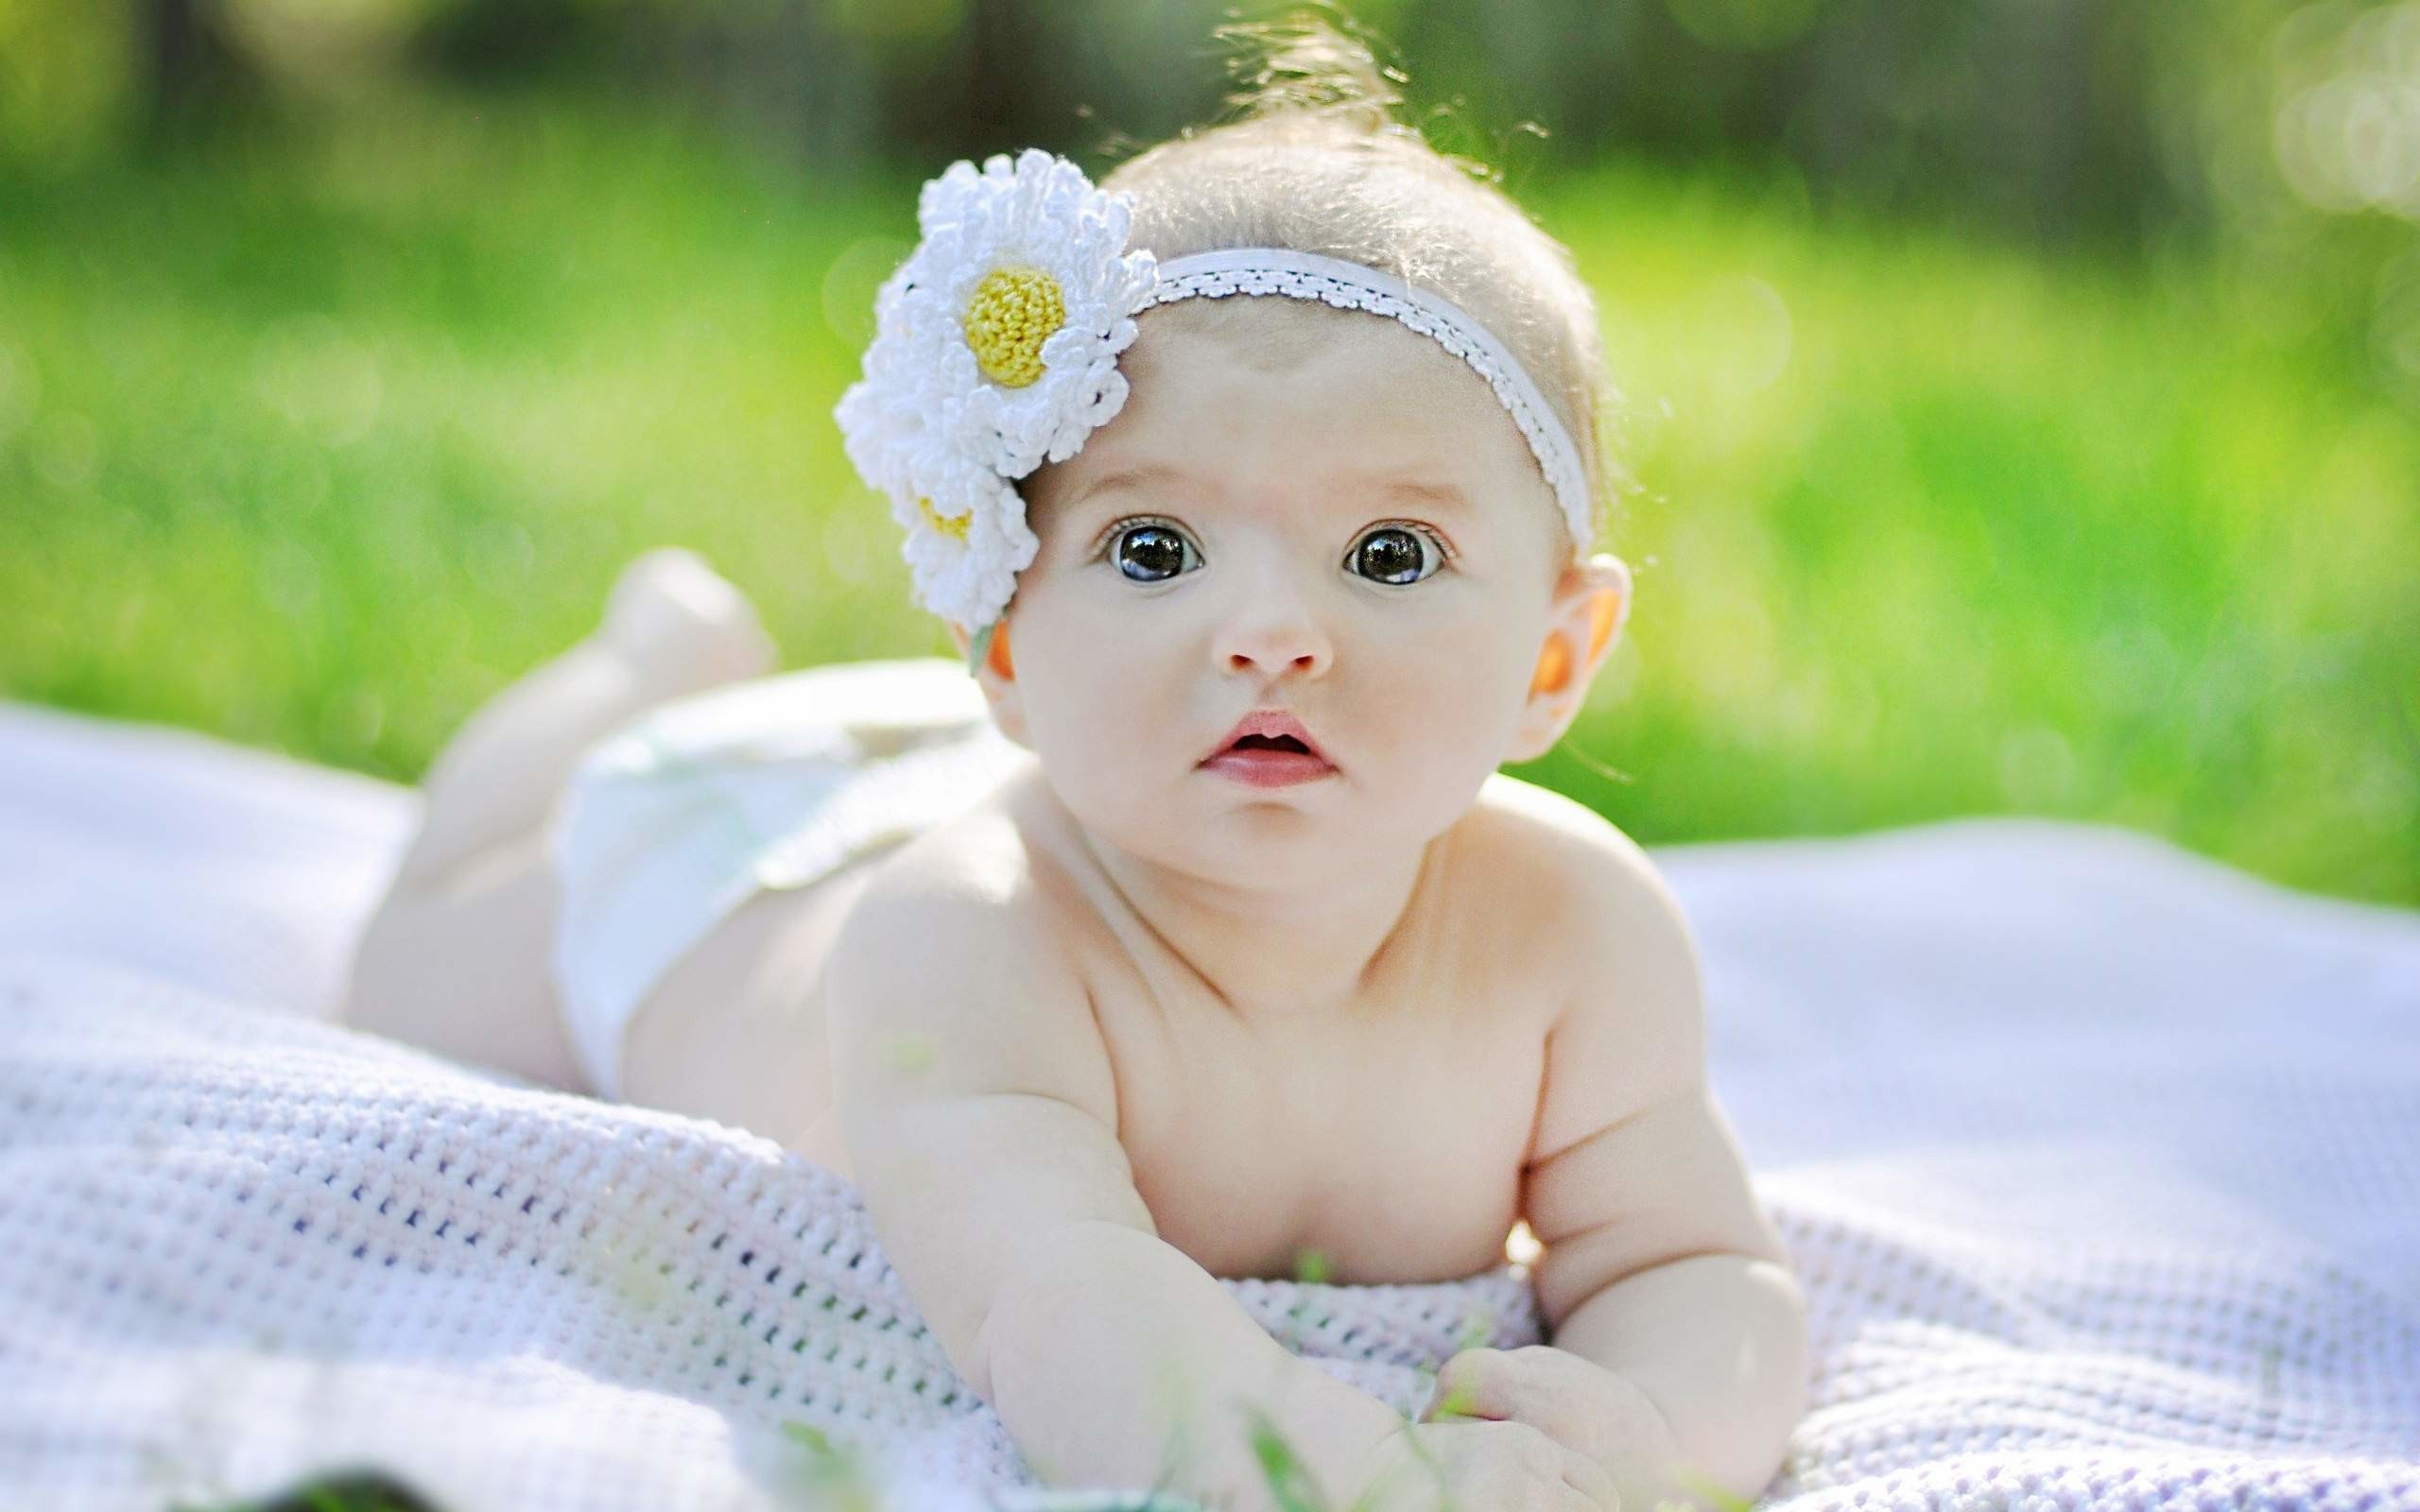 2560x1600 Cute Smiling Baby Wallpaper Free Download baby wallpaper baby wallpaper  baby wallpaper baby wallpaper baby wallpaper baby wallpaper baby wallpaper